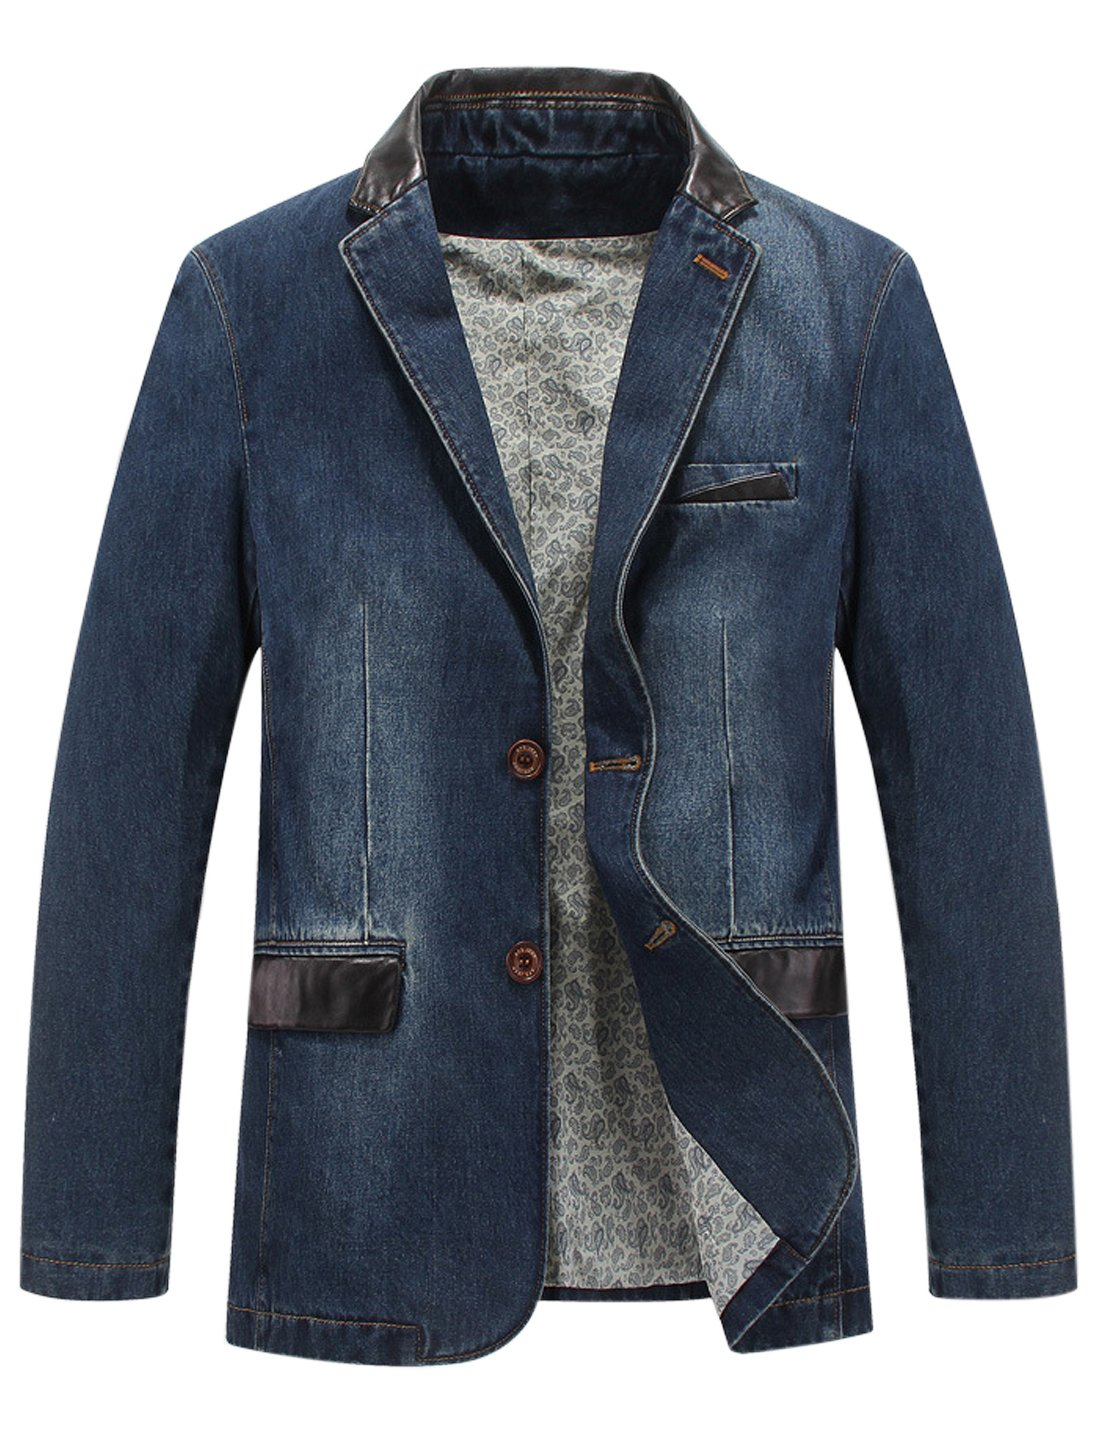 Gihuo Men's Casual Classic Fit Lapel Denim Jacket Single-Breasted Sport Coat (X-Small, Blue)